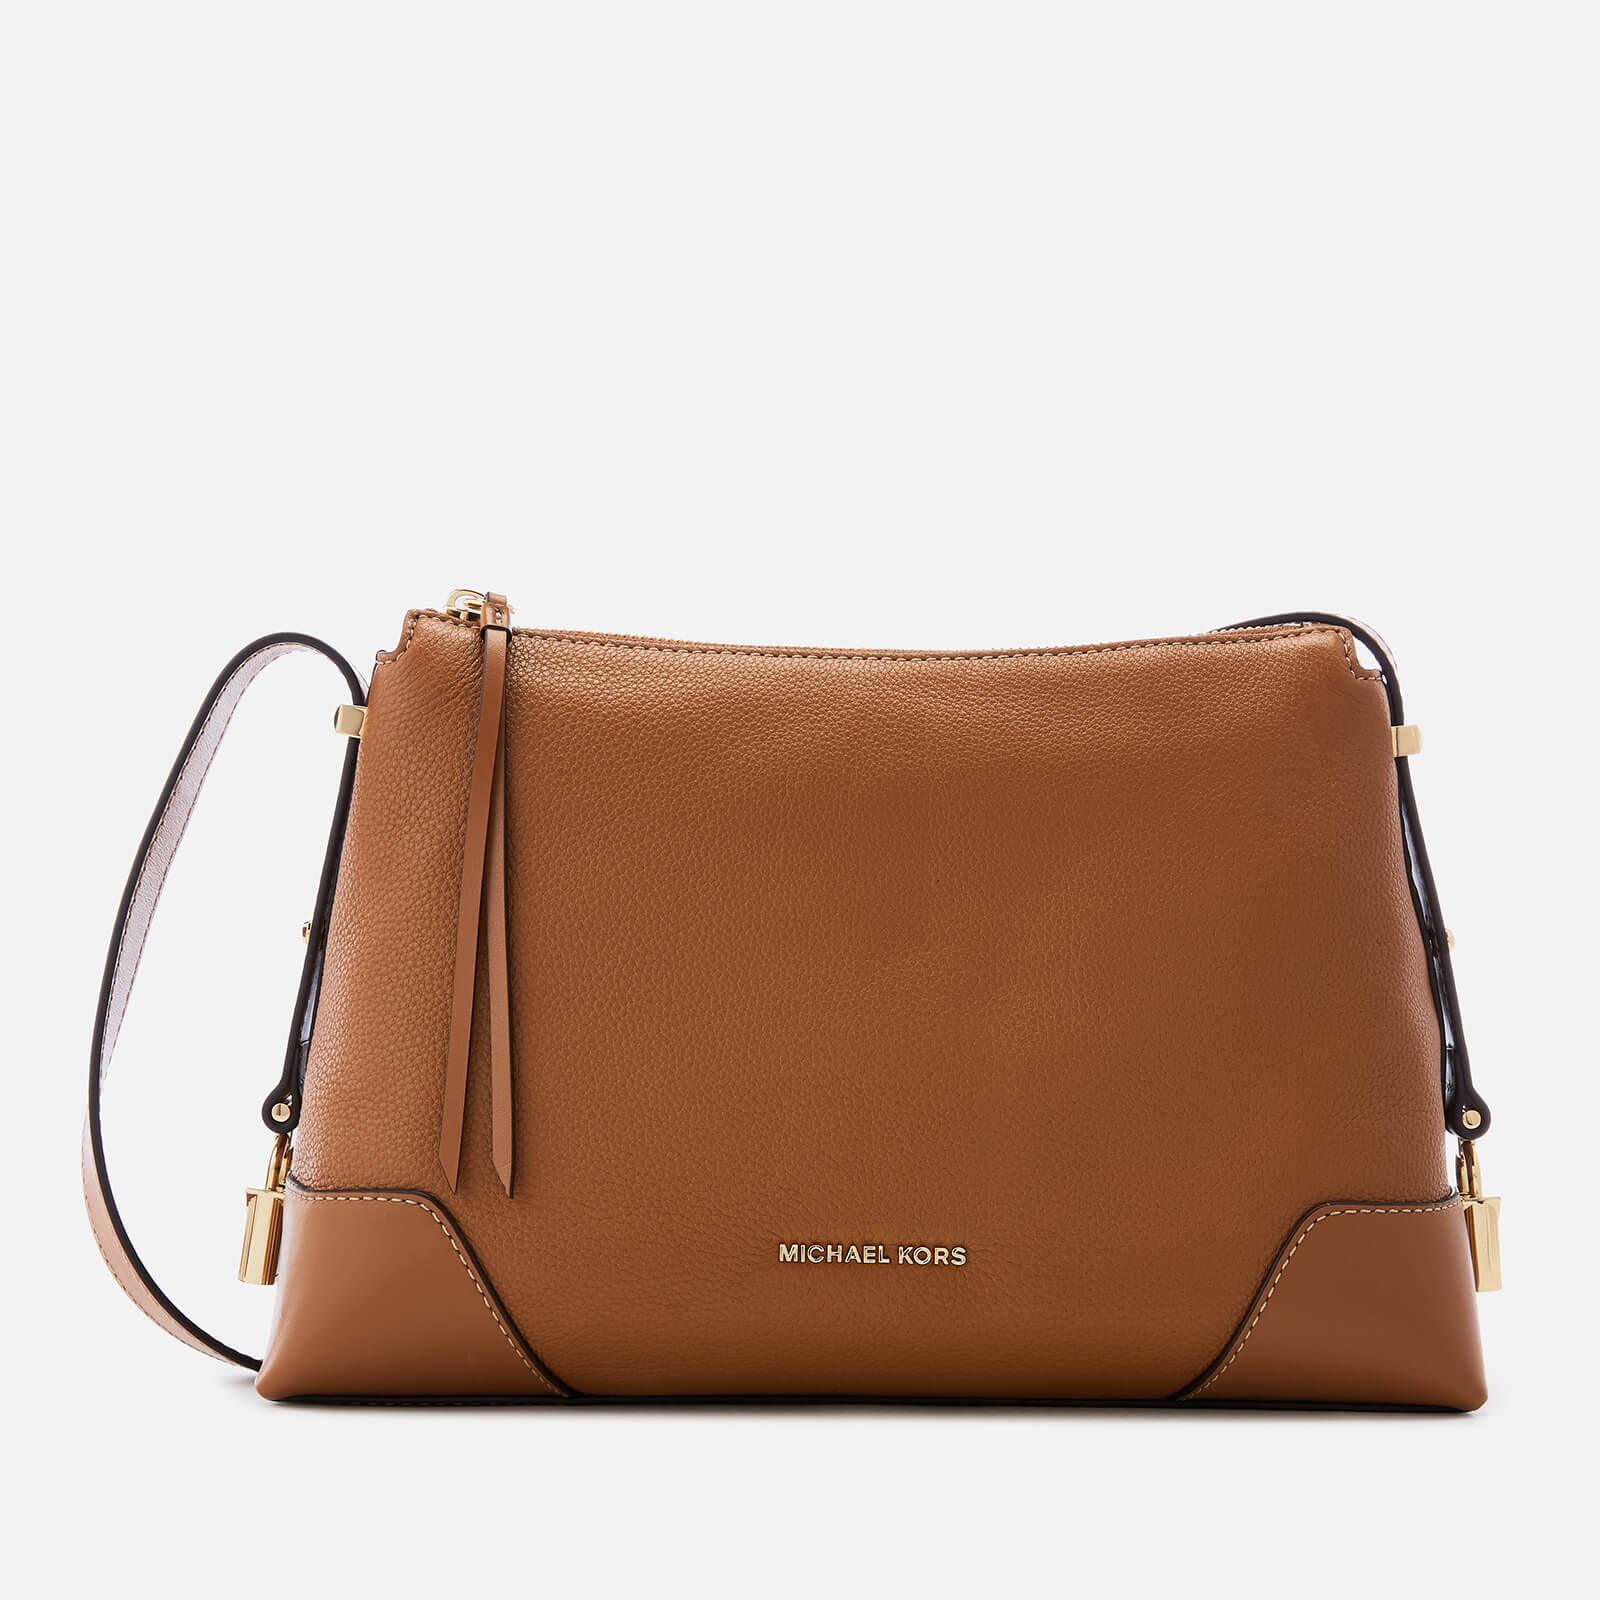 a55a3463341f MICHAEL MICHAEL KORS Women's Crosby Cross Body Shoulder Bag - Acorn - Free  UK Delivery over £50